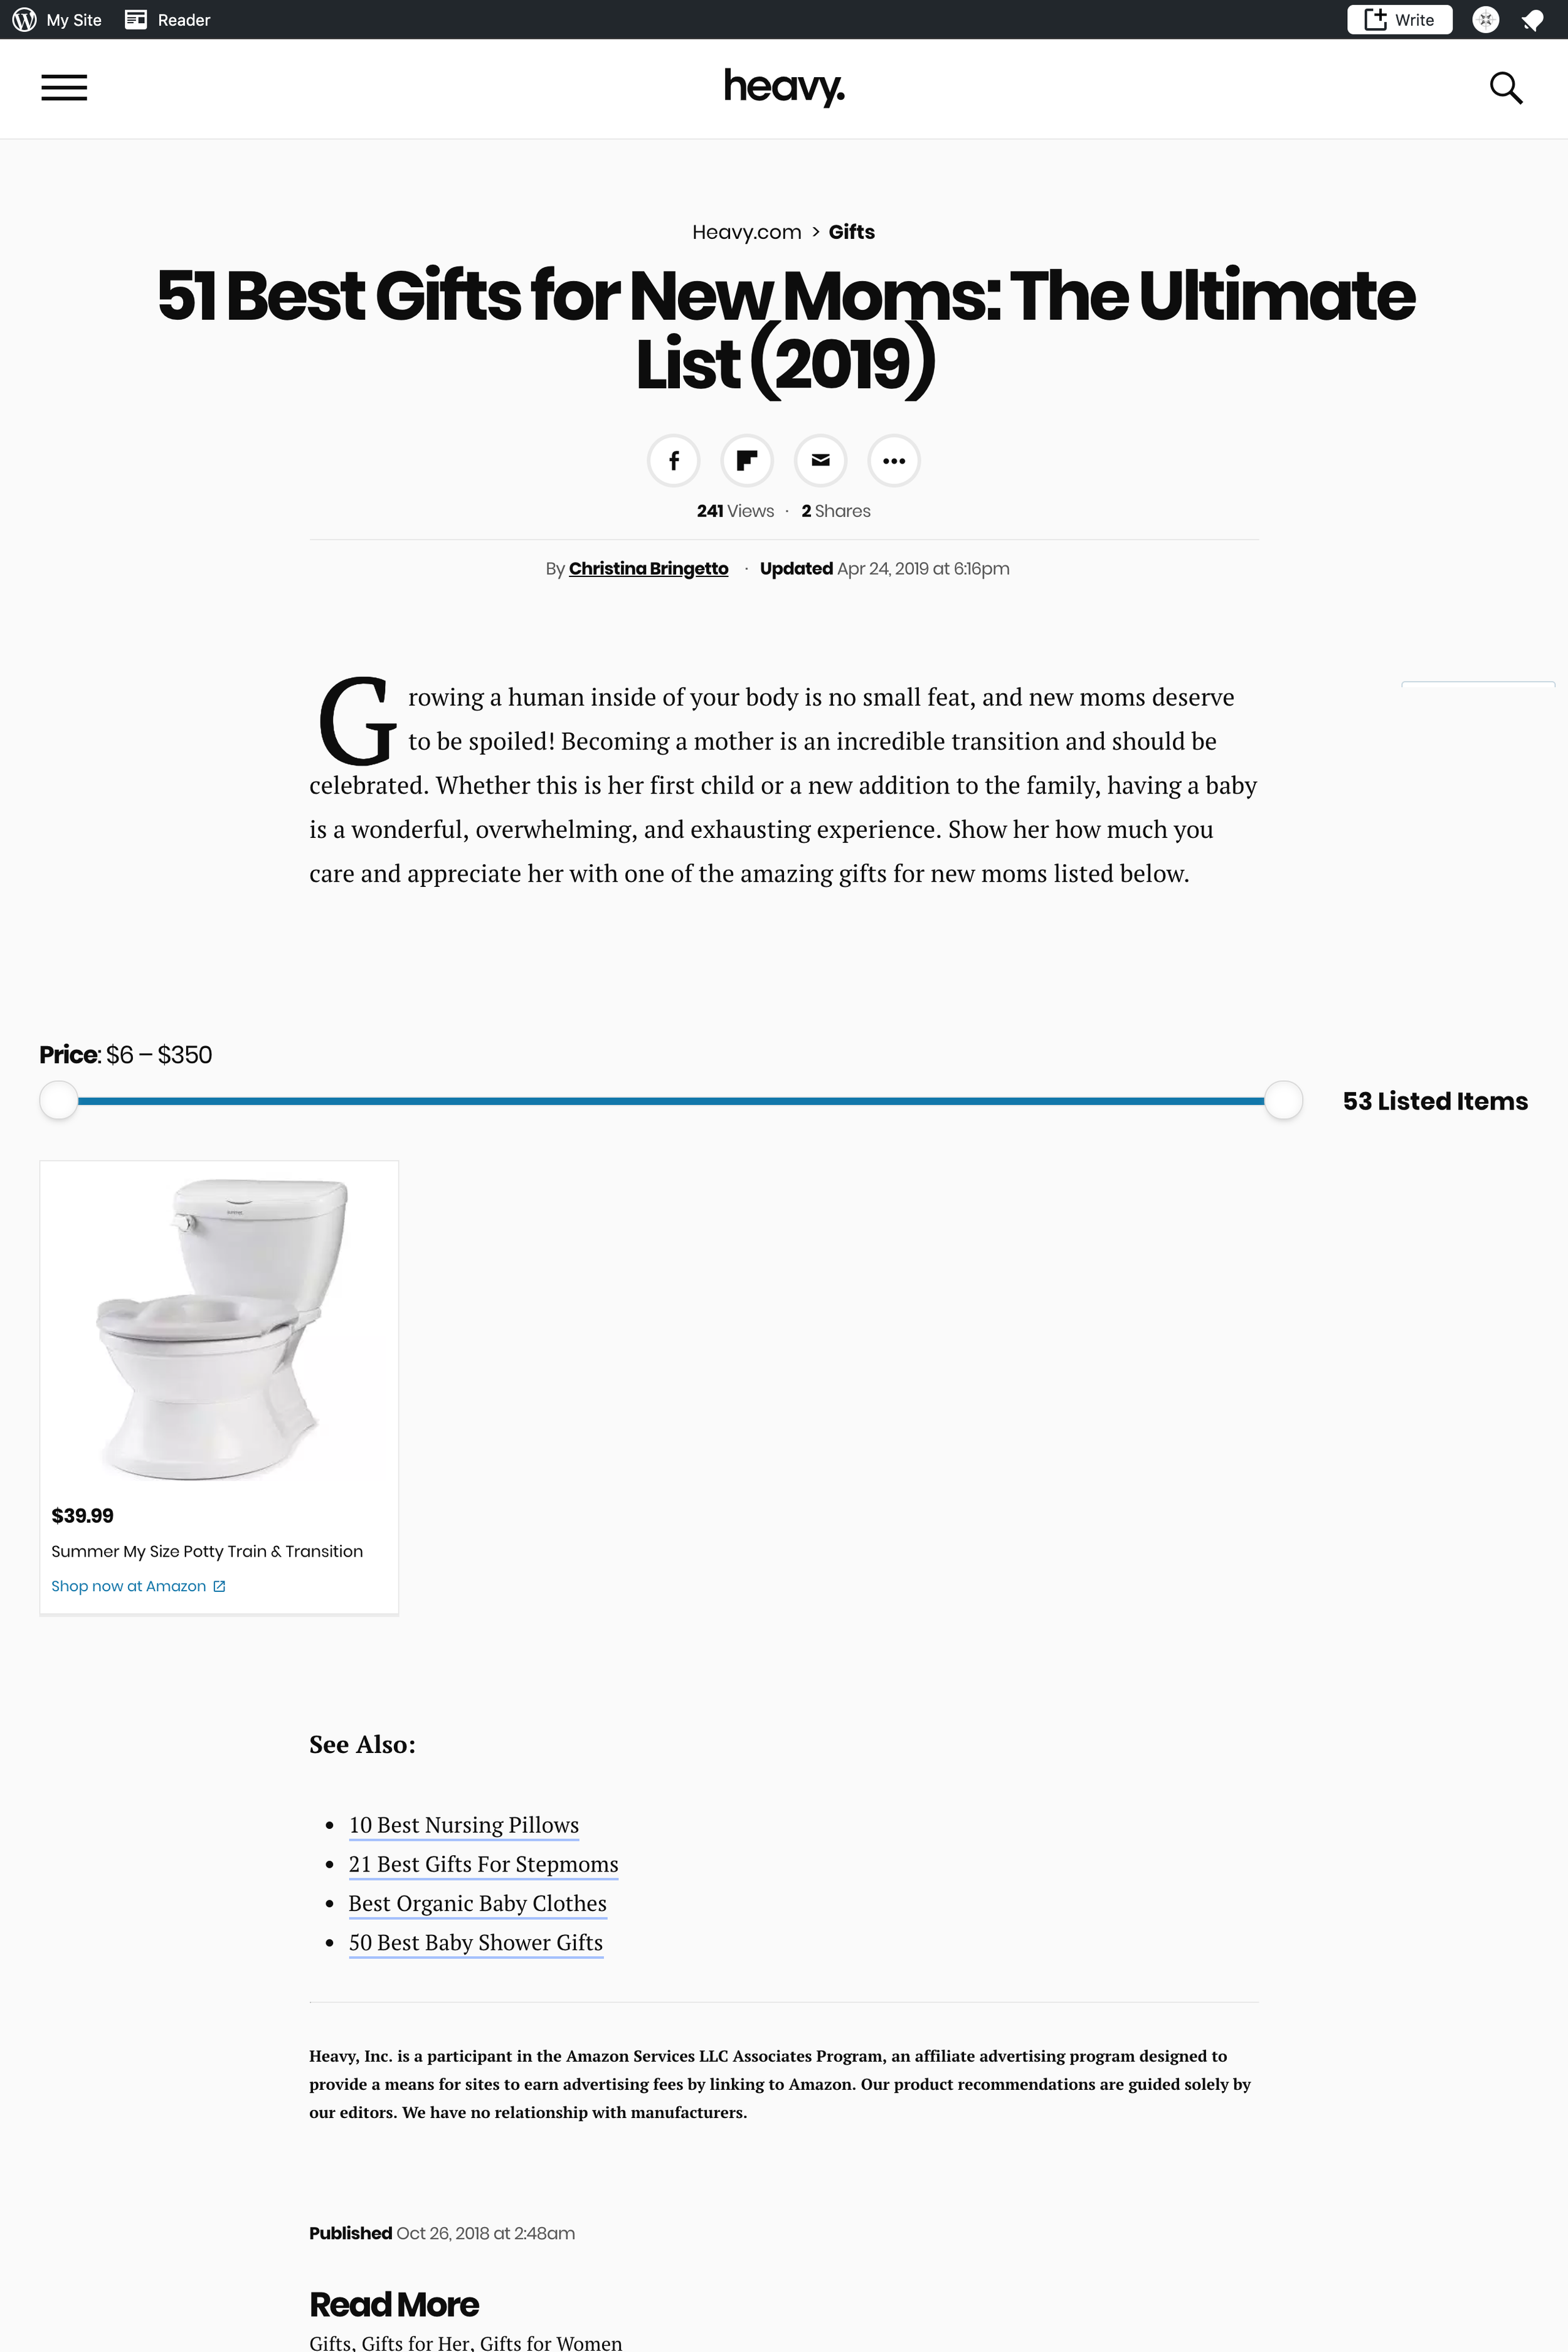 2019.05.00_Heavy_Summer My Size Potty Train & Transition_Roundup 3 of 5_cropped 2x3.png